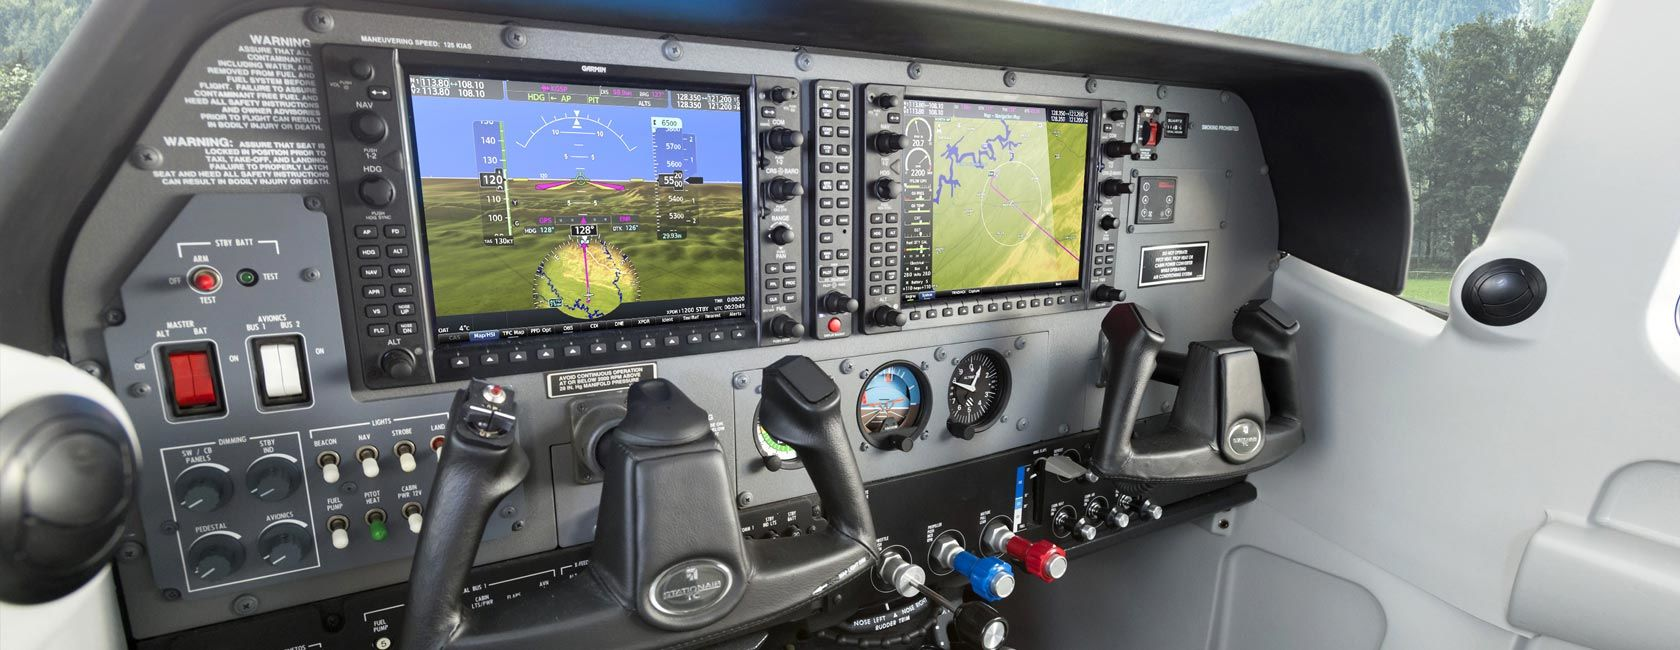 New G1000 NXi Integrated Flight Deck